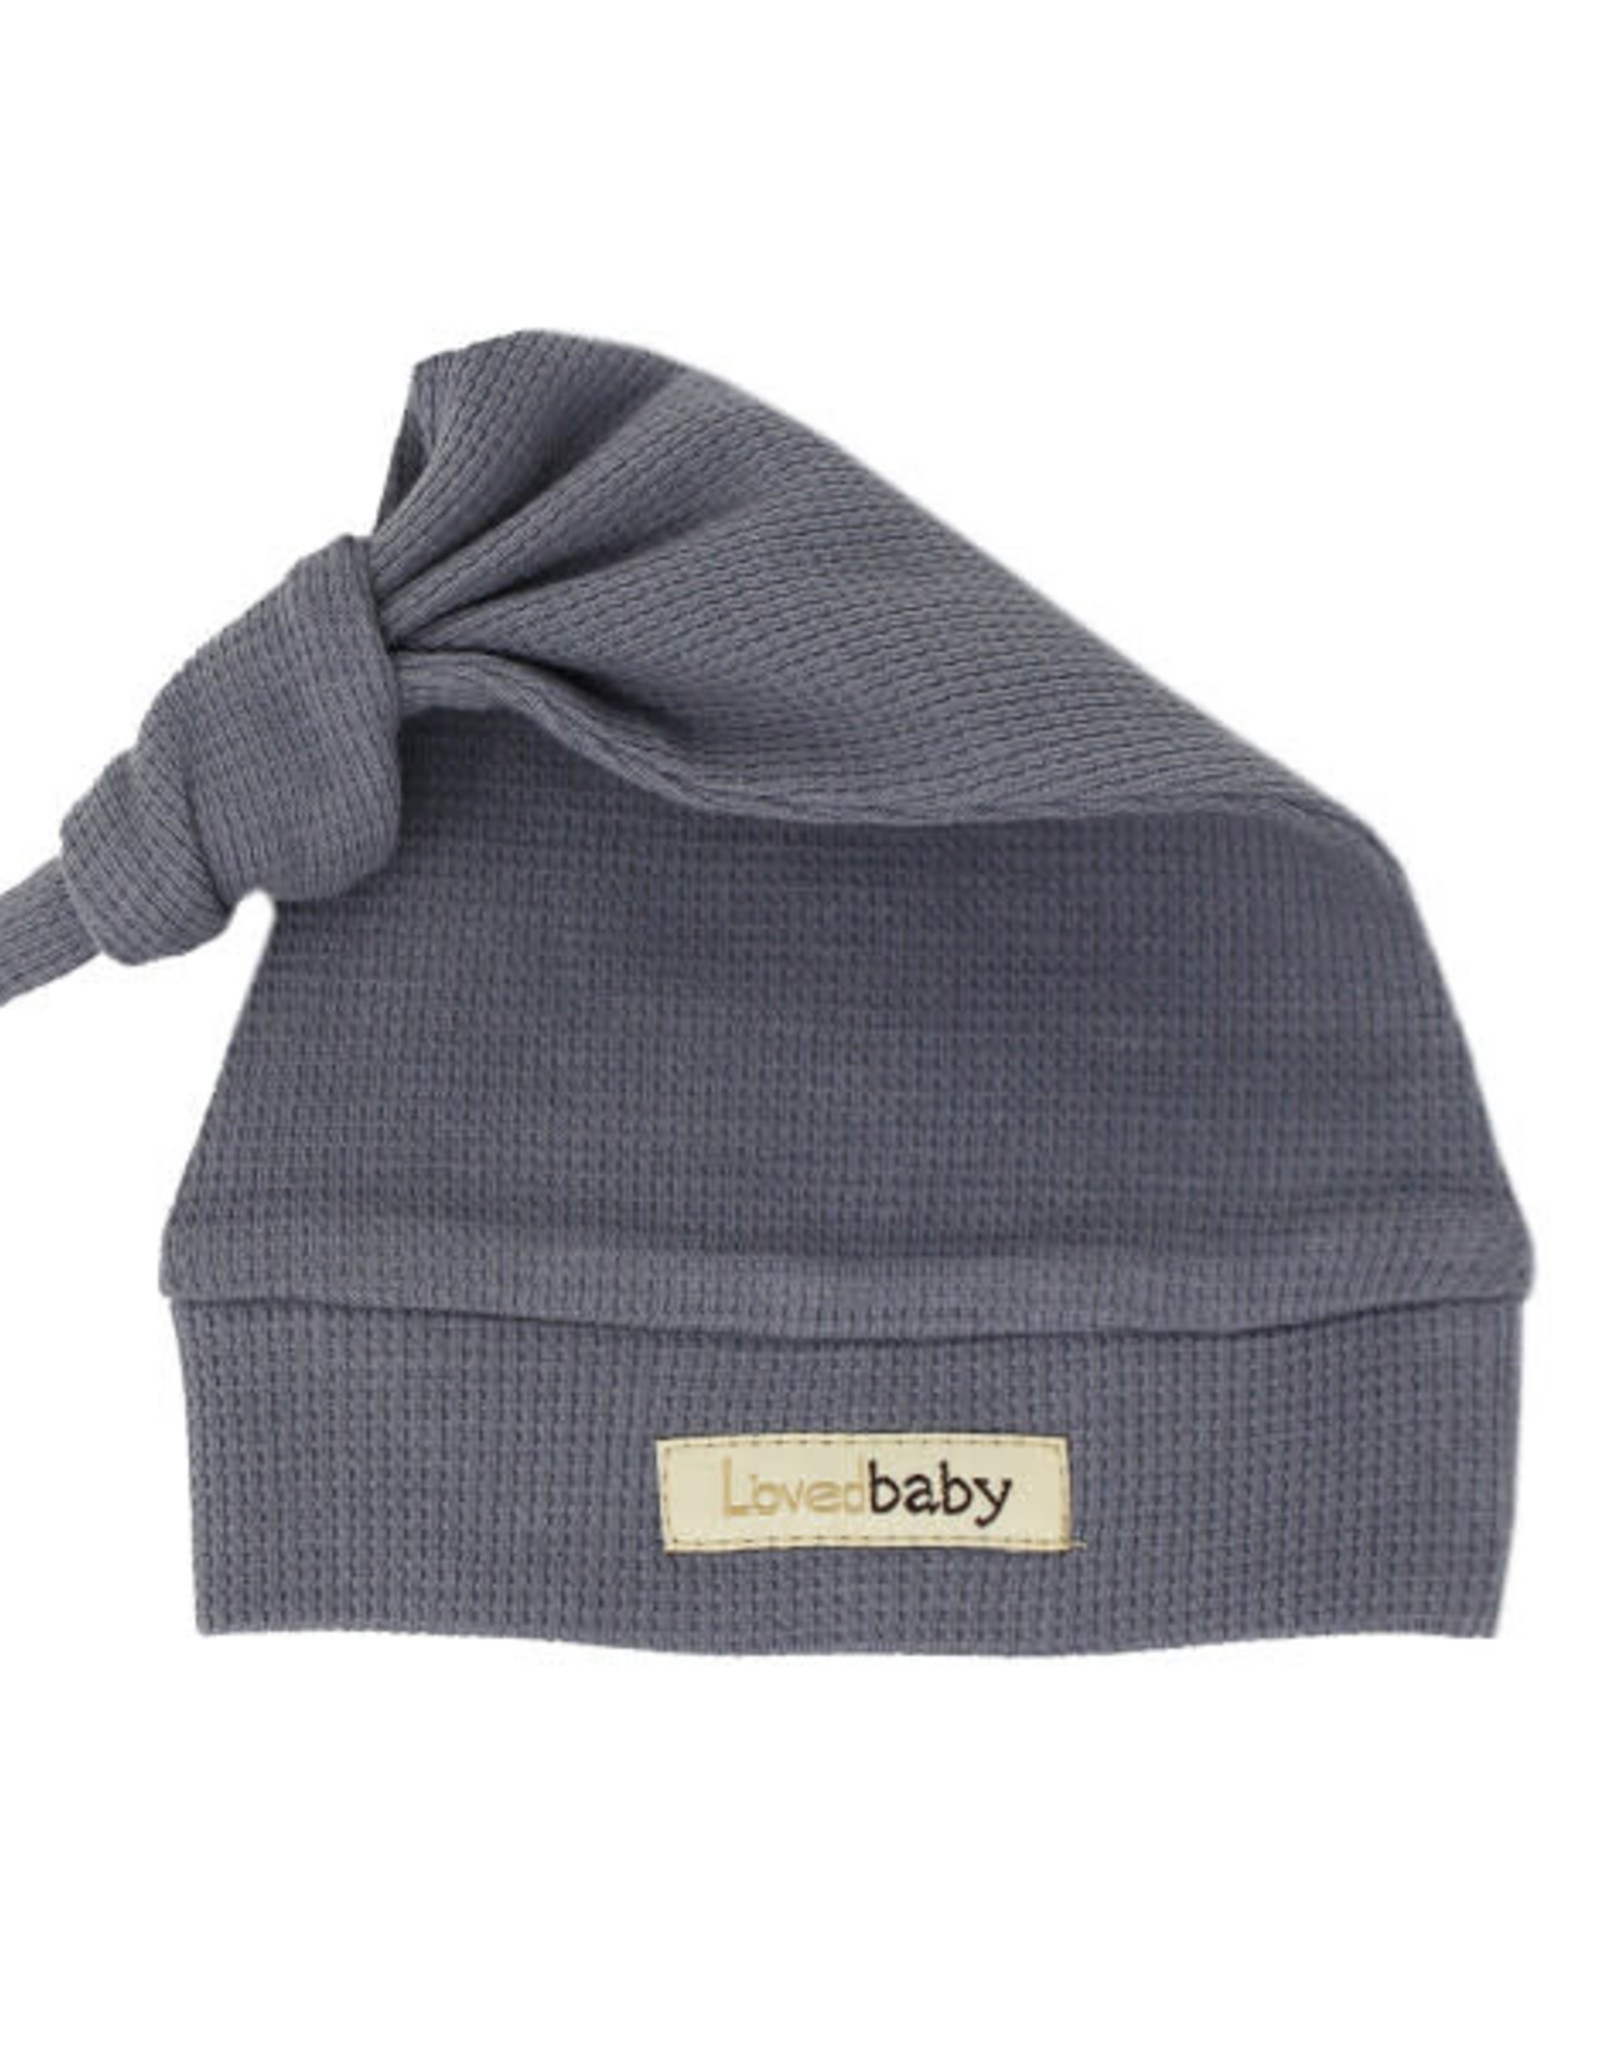 L'oved Baby Thermal Knot Hat Mist